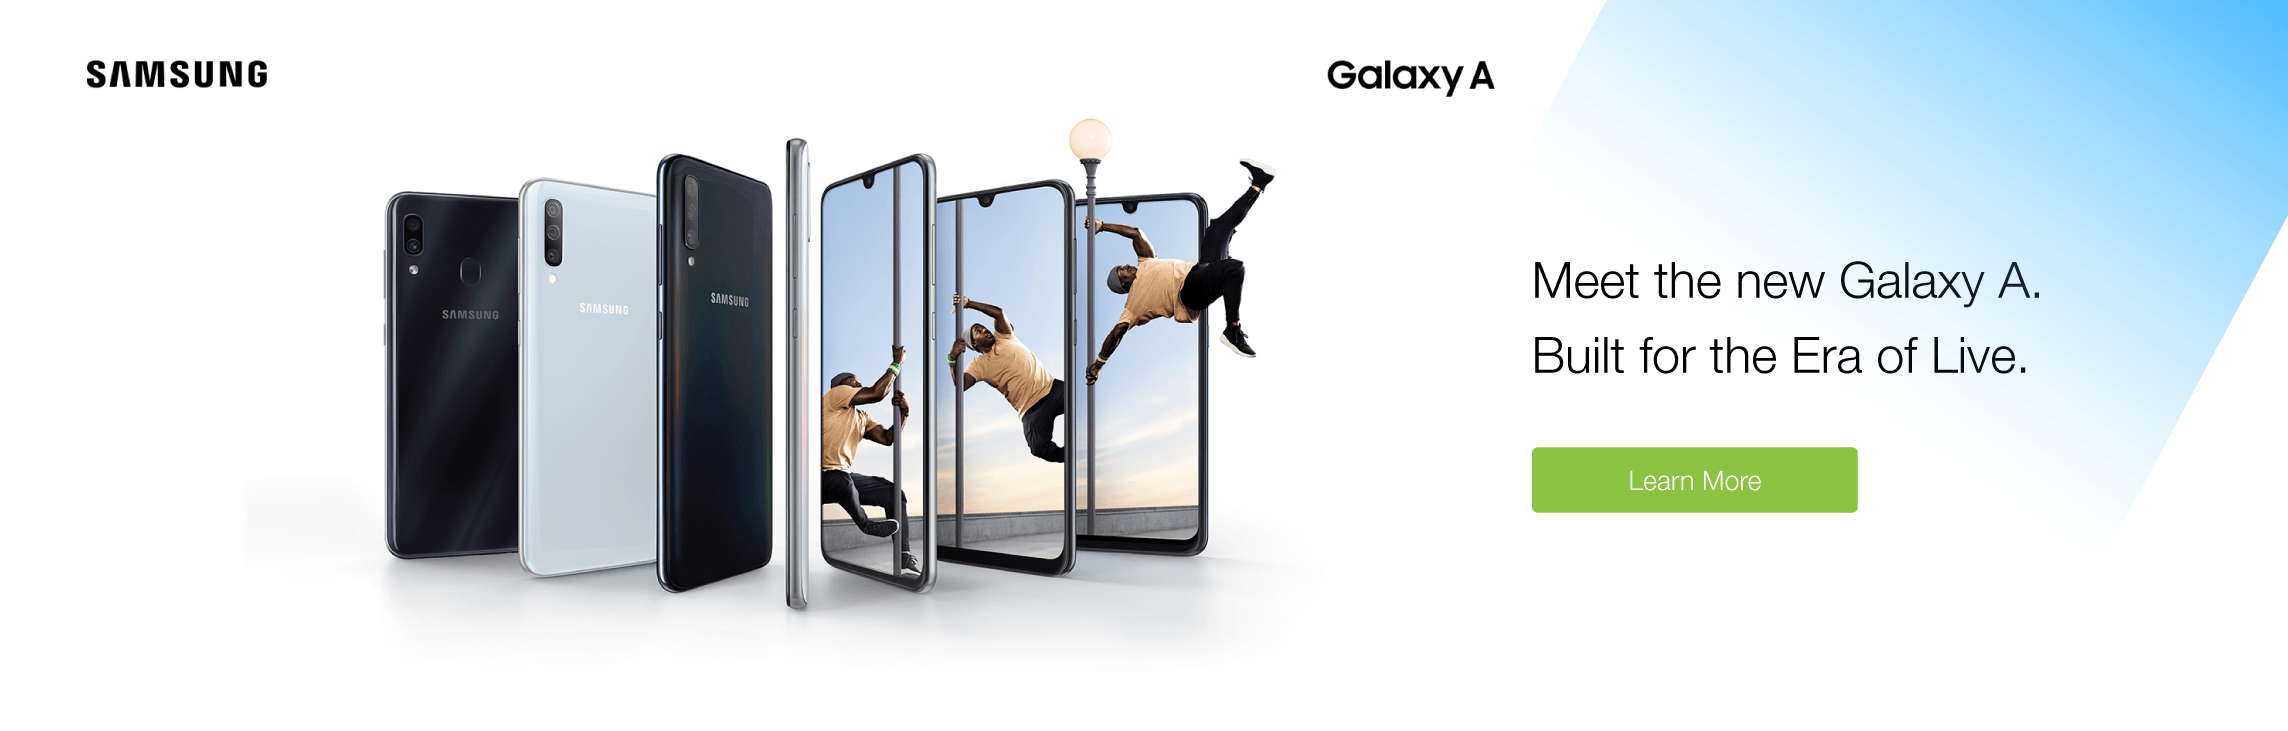 Get a new Samsung Galaxy A series smartphone today!